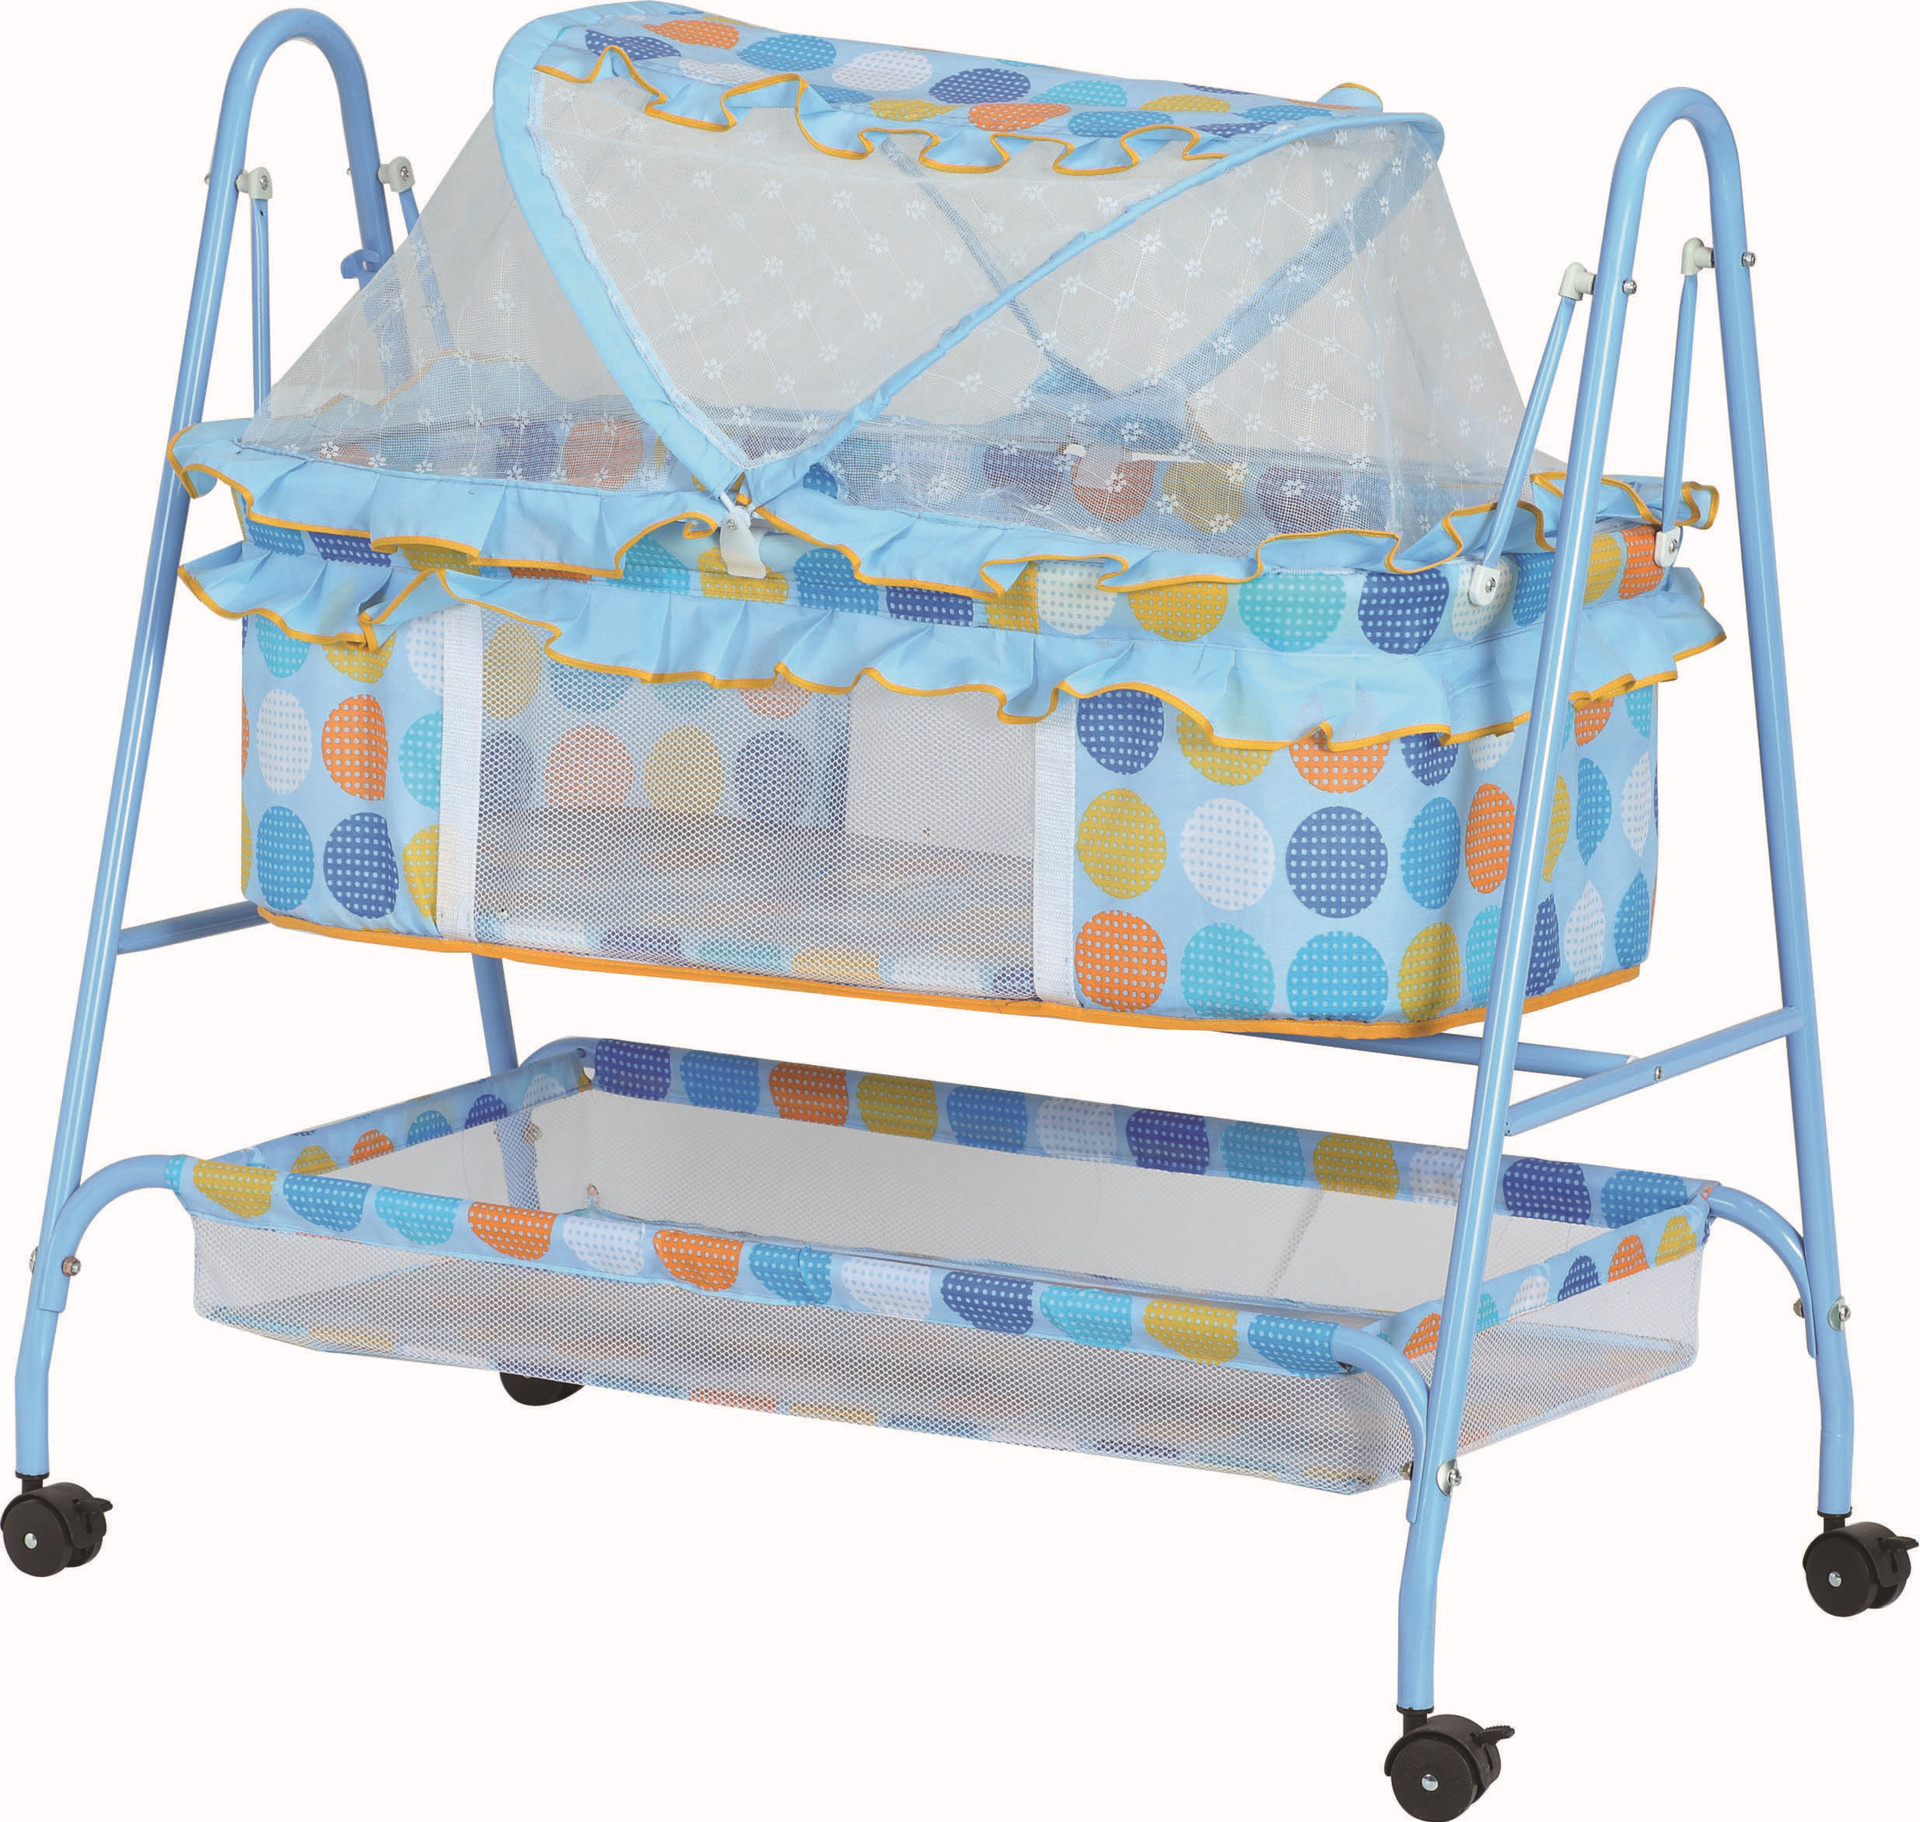 Baby Portable Light weight Shaking Bed Cribs Cradle with Mosquitoes Net Swing with Basket (BB263)